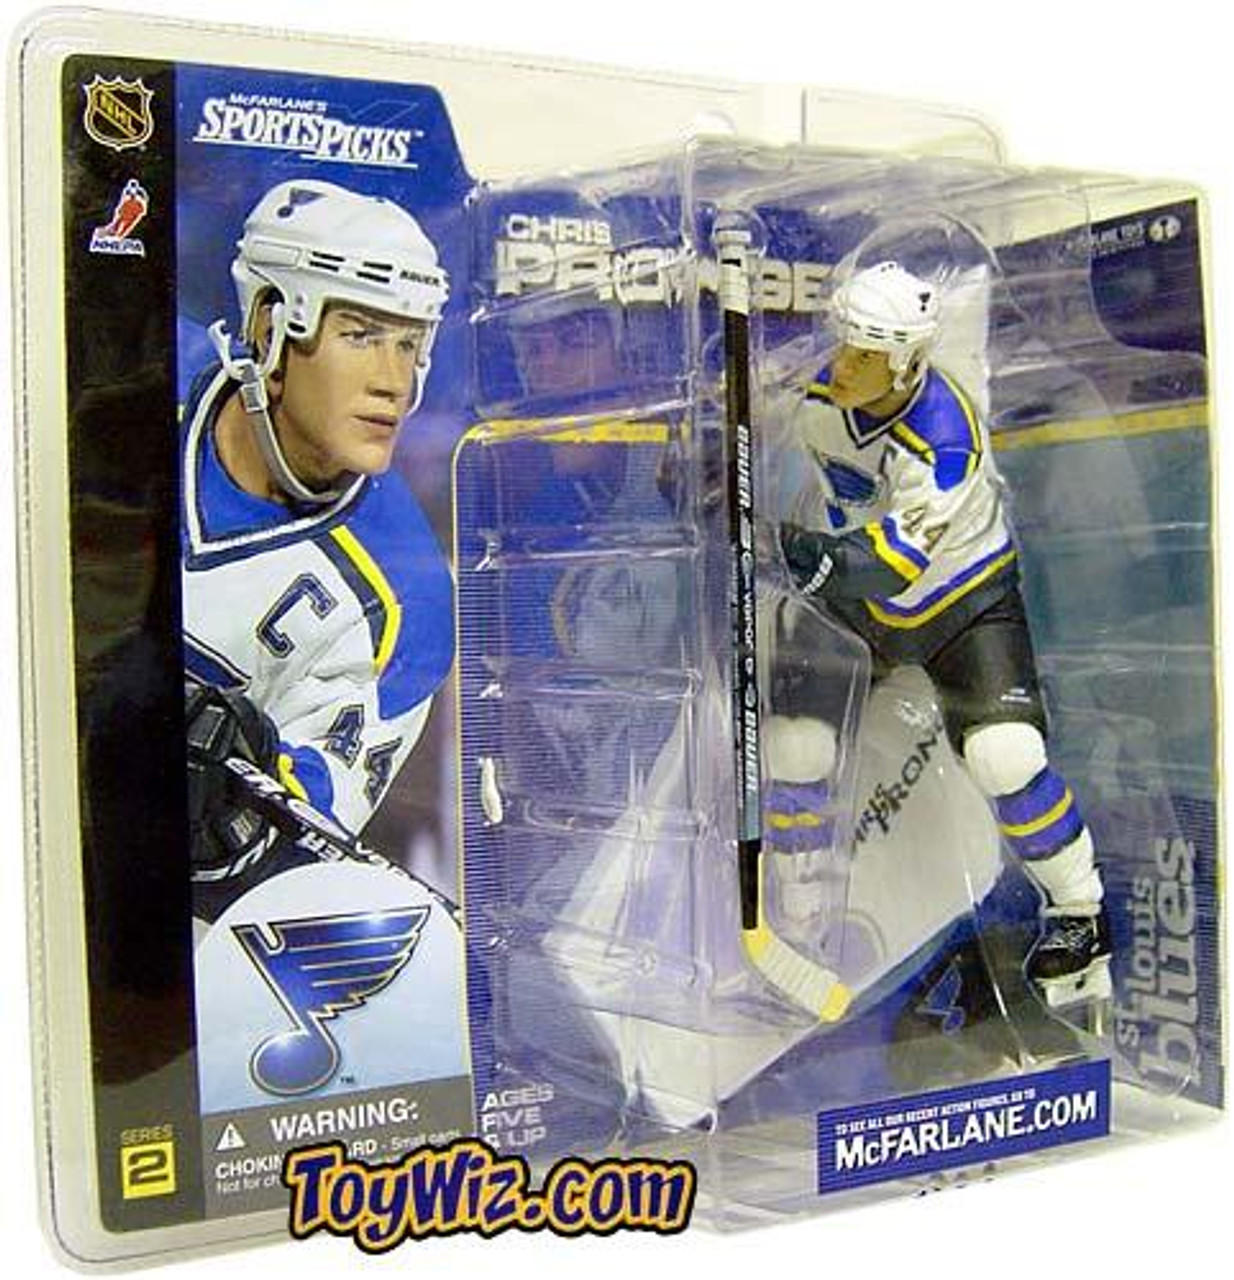 McFarlane Toys NHL St. Louis Blues Sports Picks Series 2 Chris Pronger Action Figure [White Jersey]